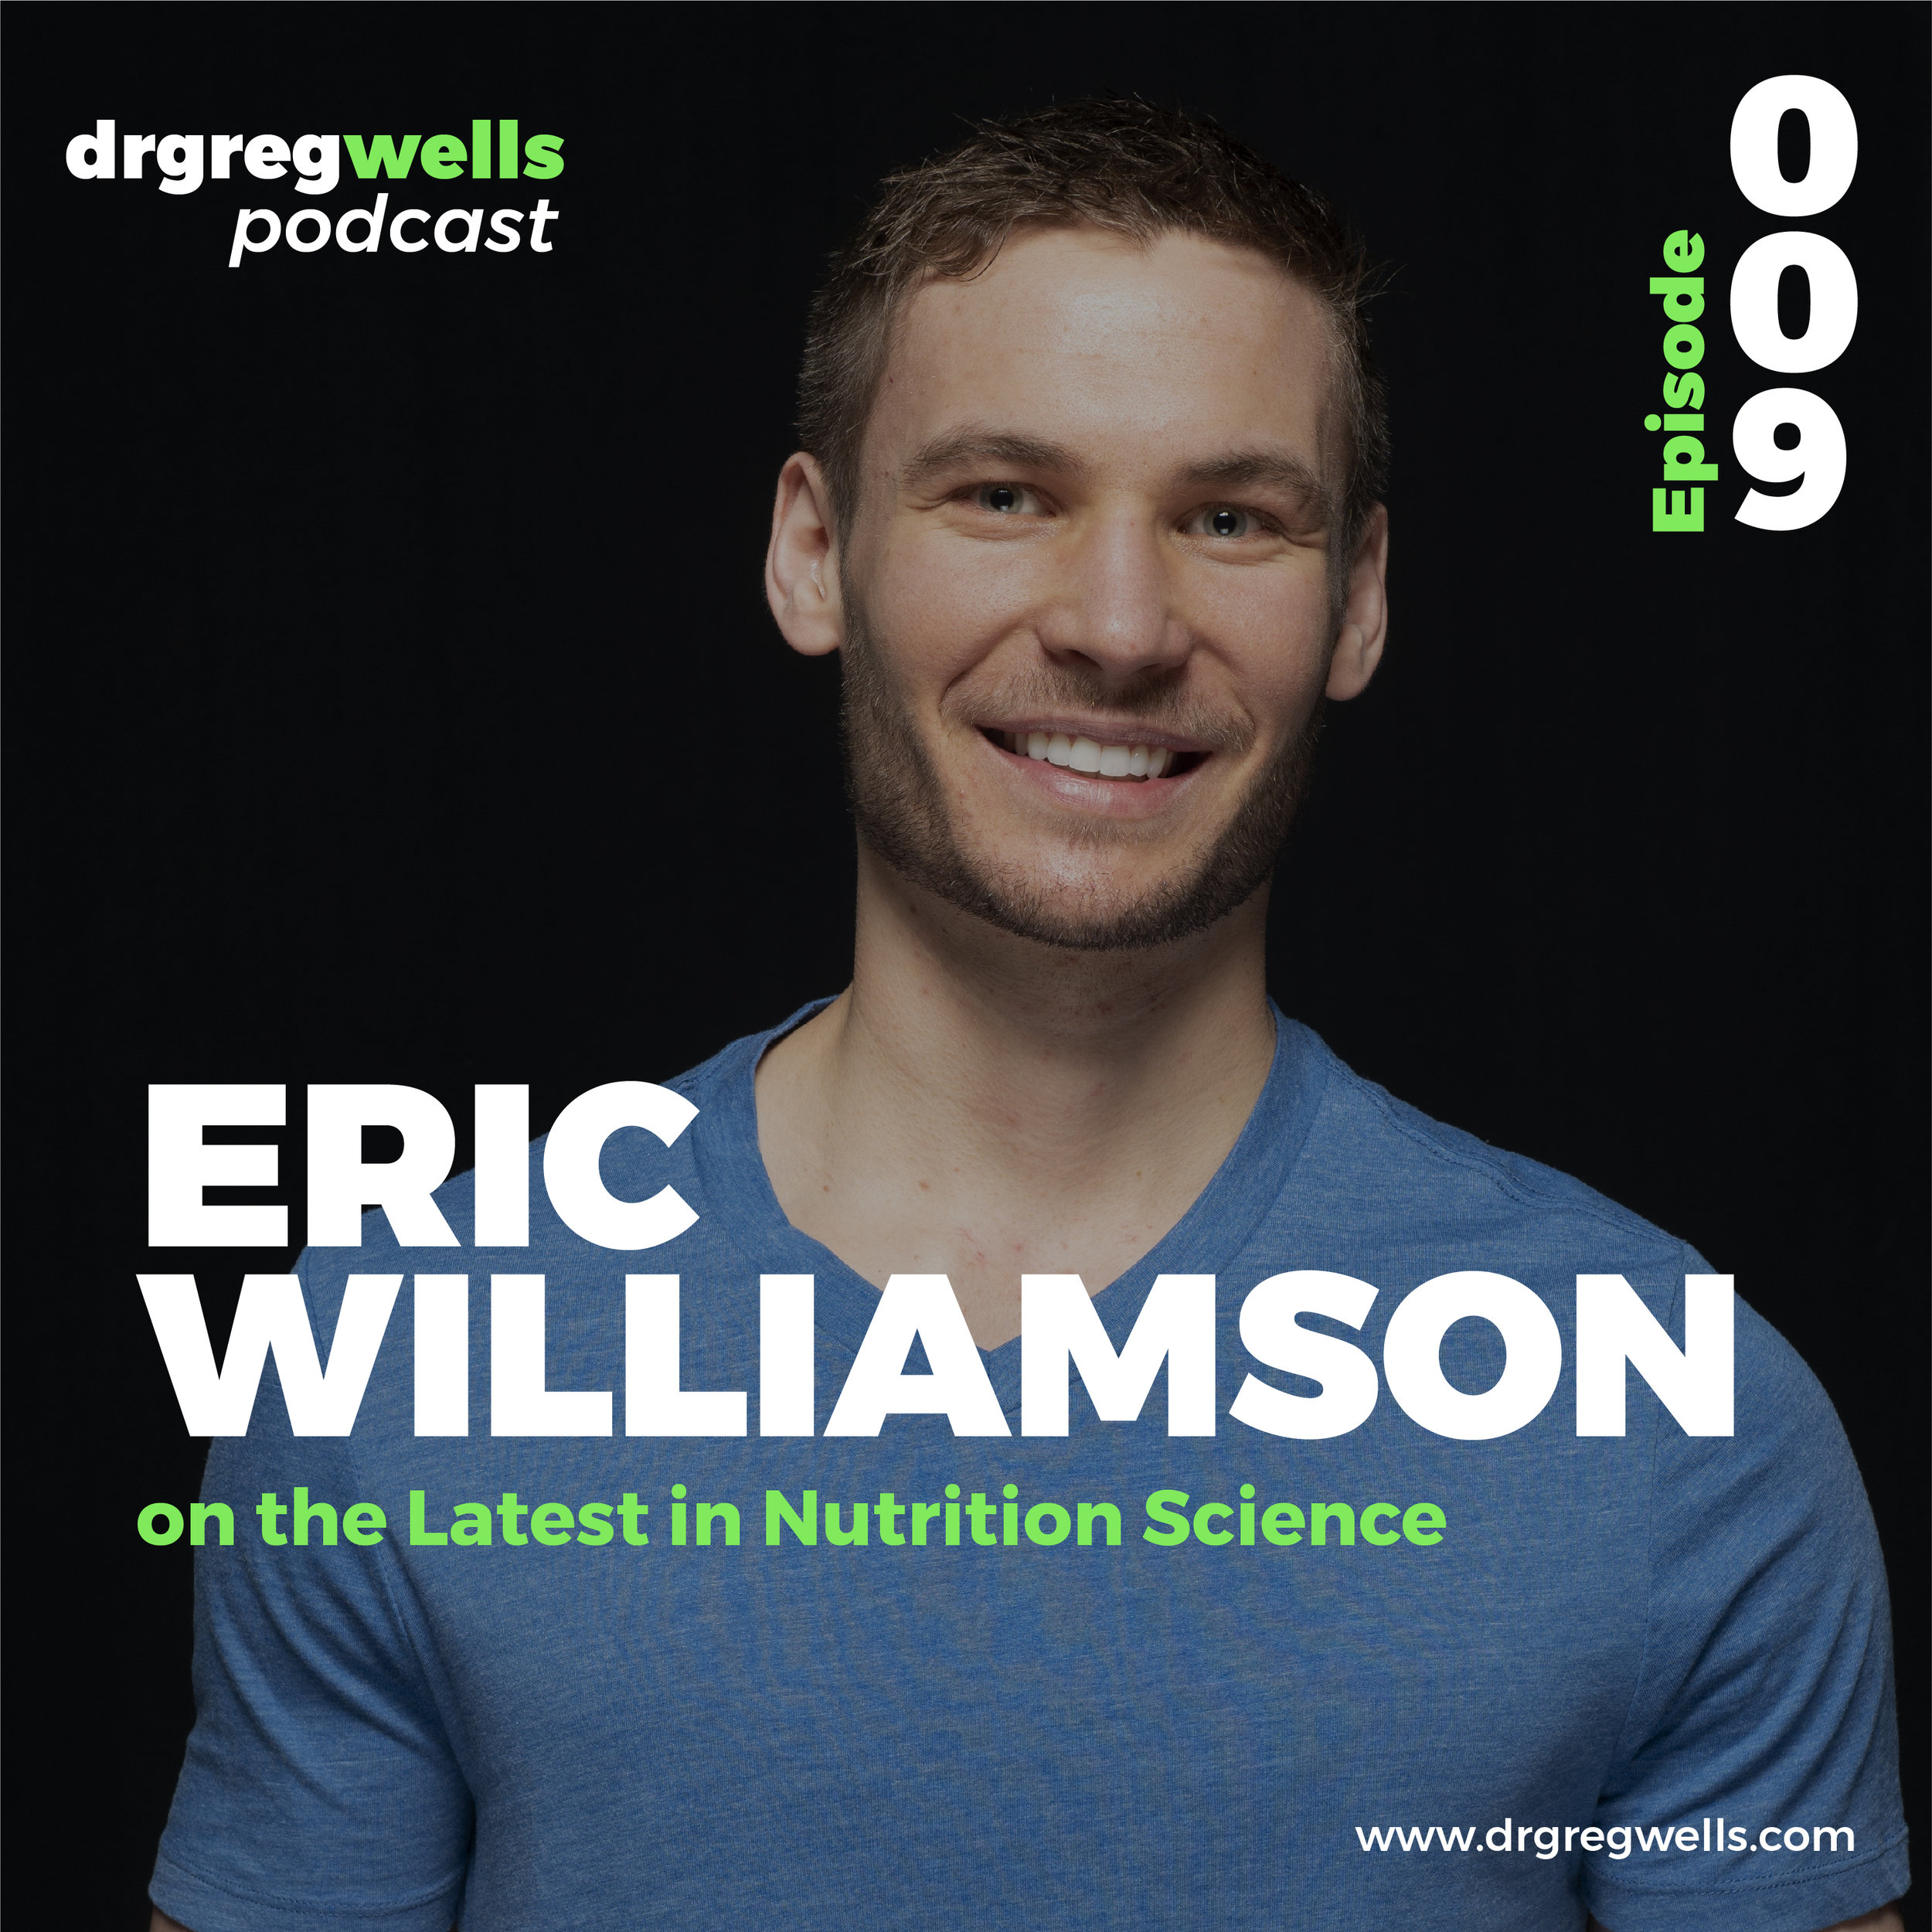 Dr Greg Wells Podcast Guest EP 1 - 32-09.jpg